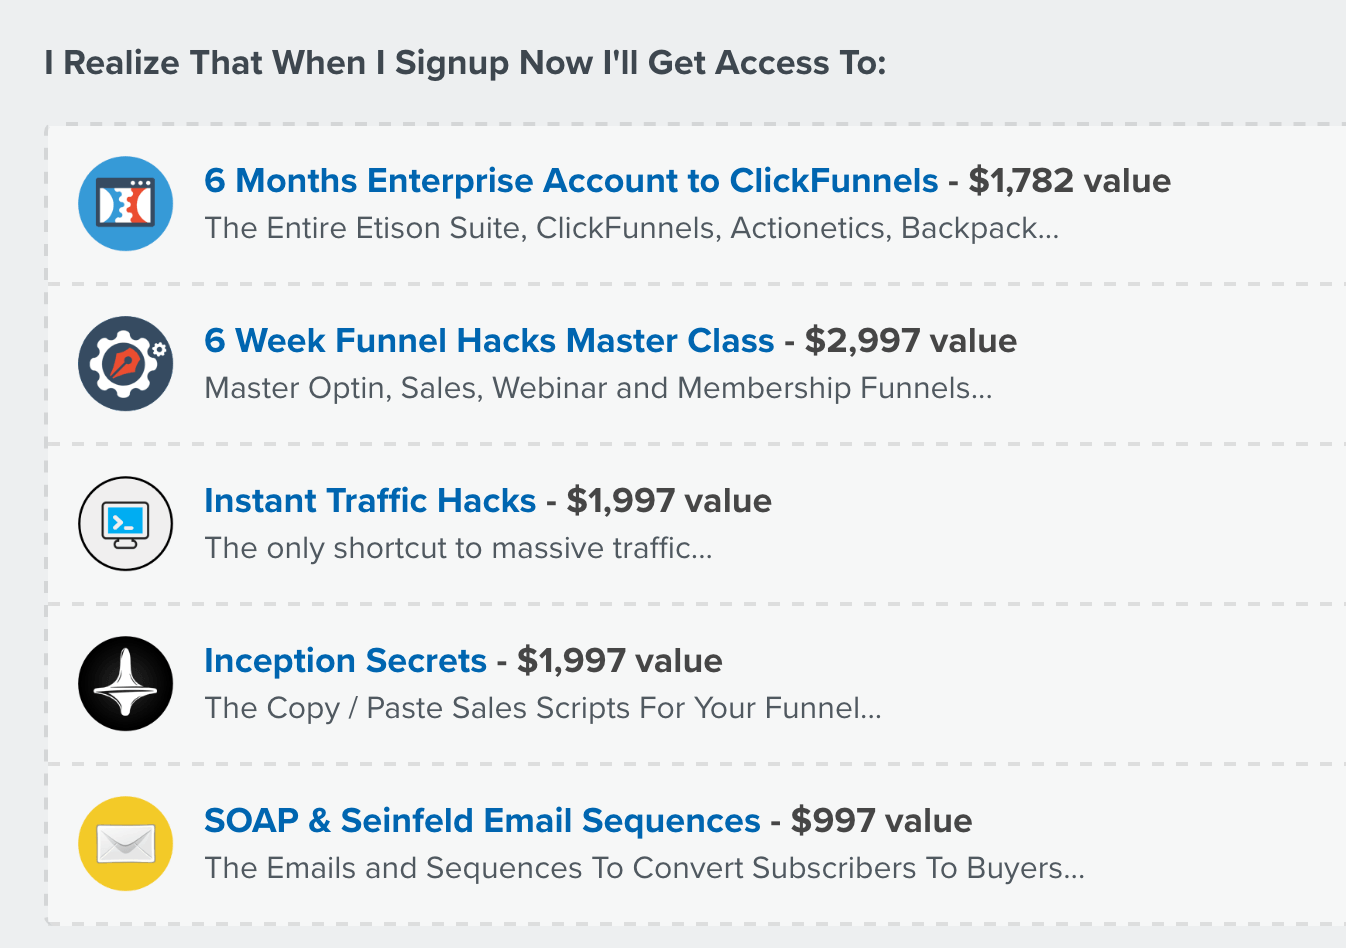 Clickfunnels Integration With Facebook